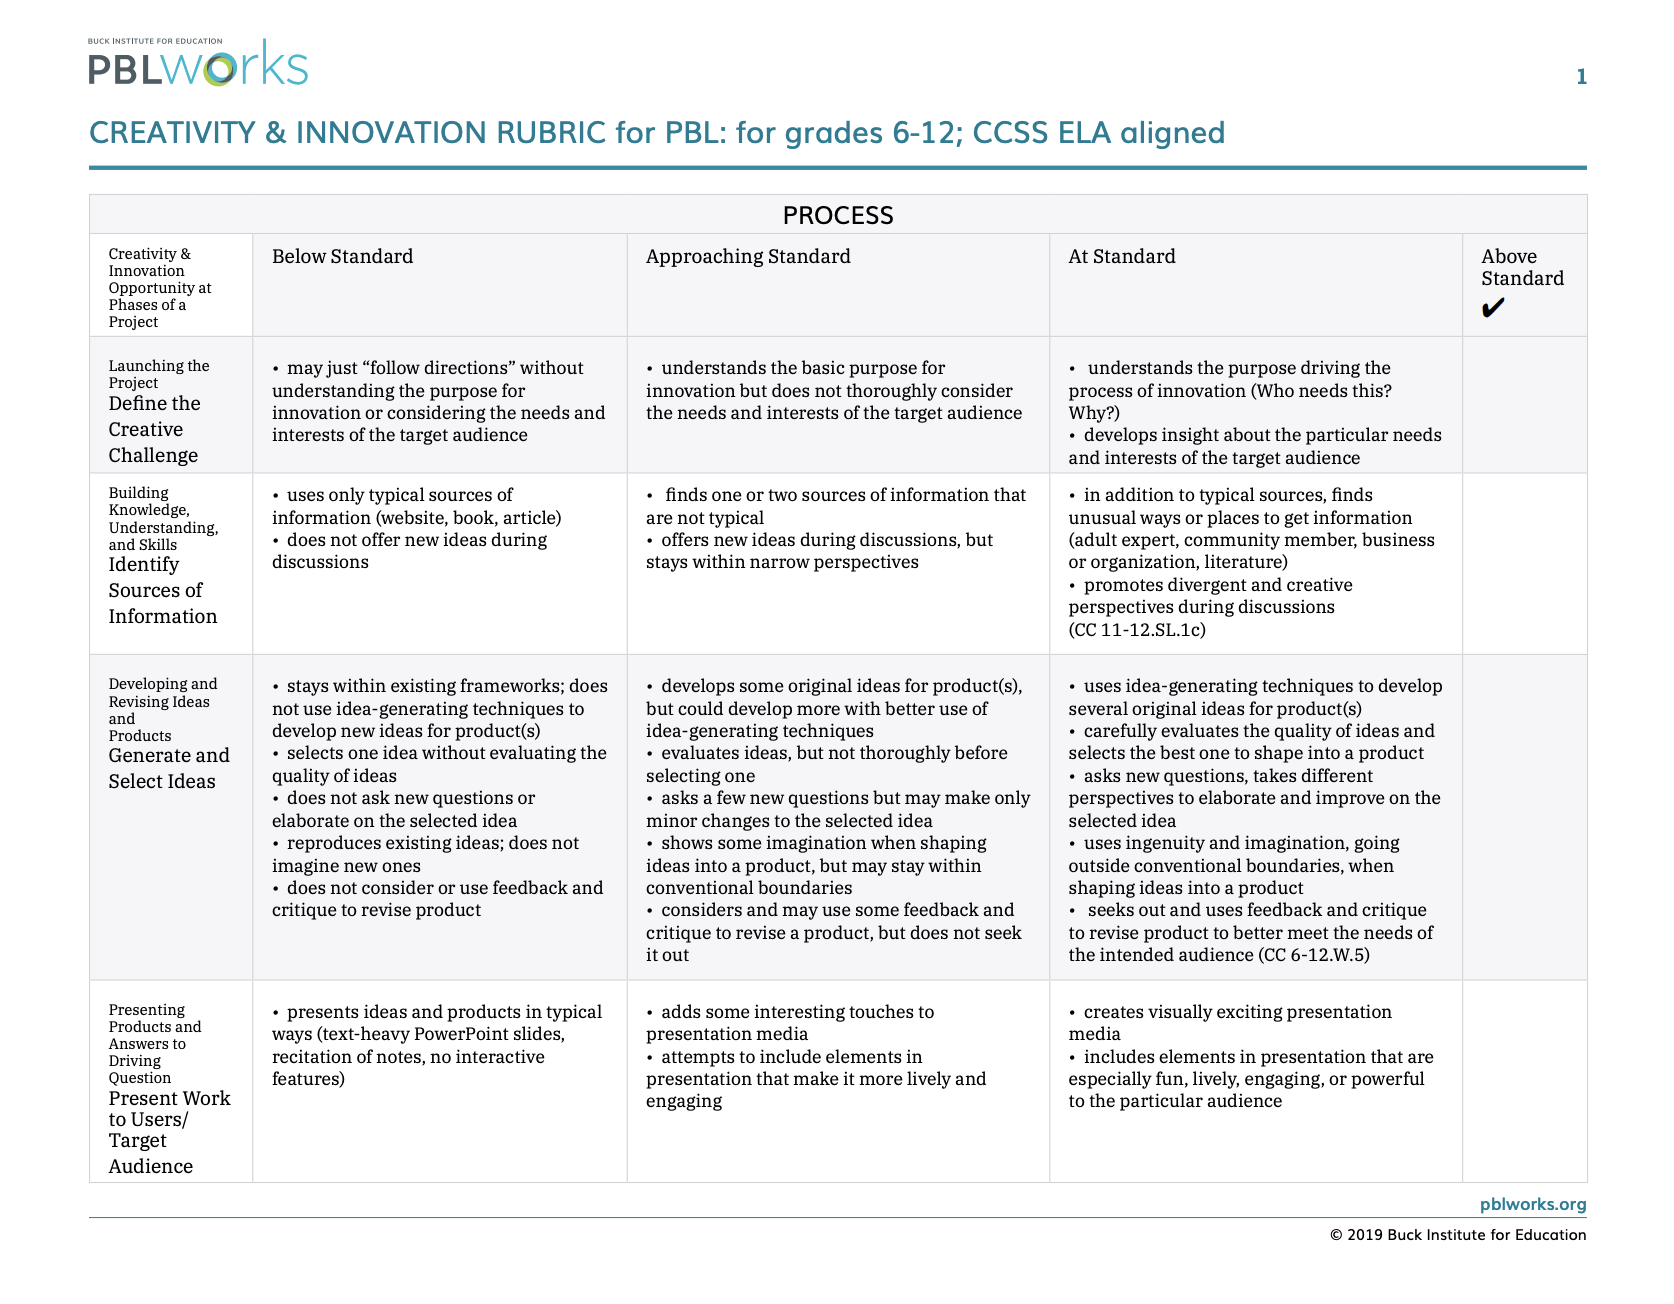 Creativity and Innovation Rubric for PBL grades 6-12 CCSS